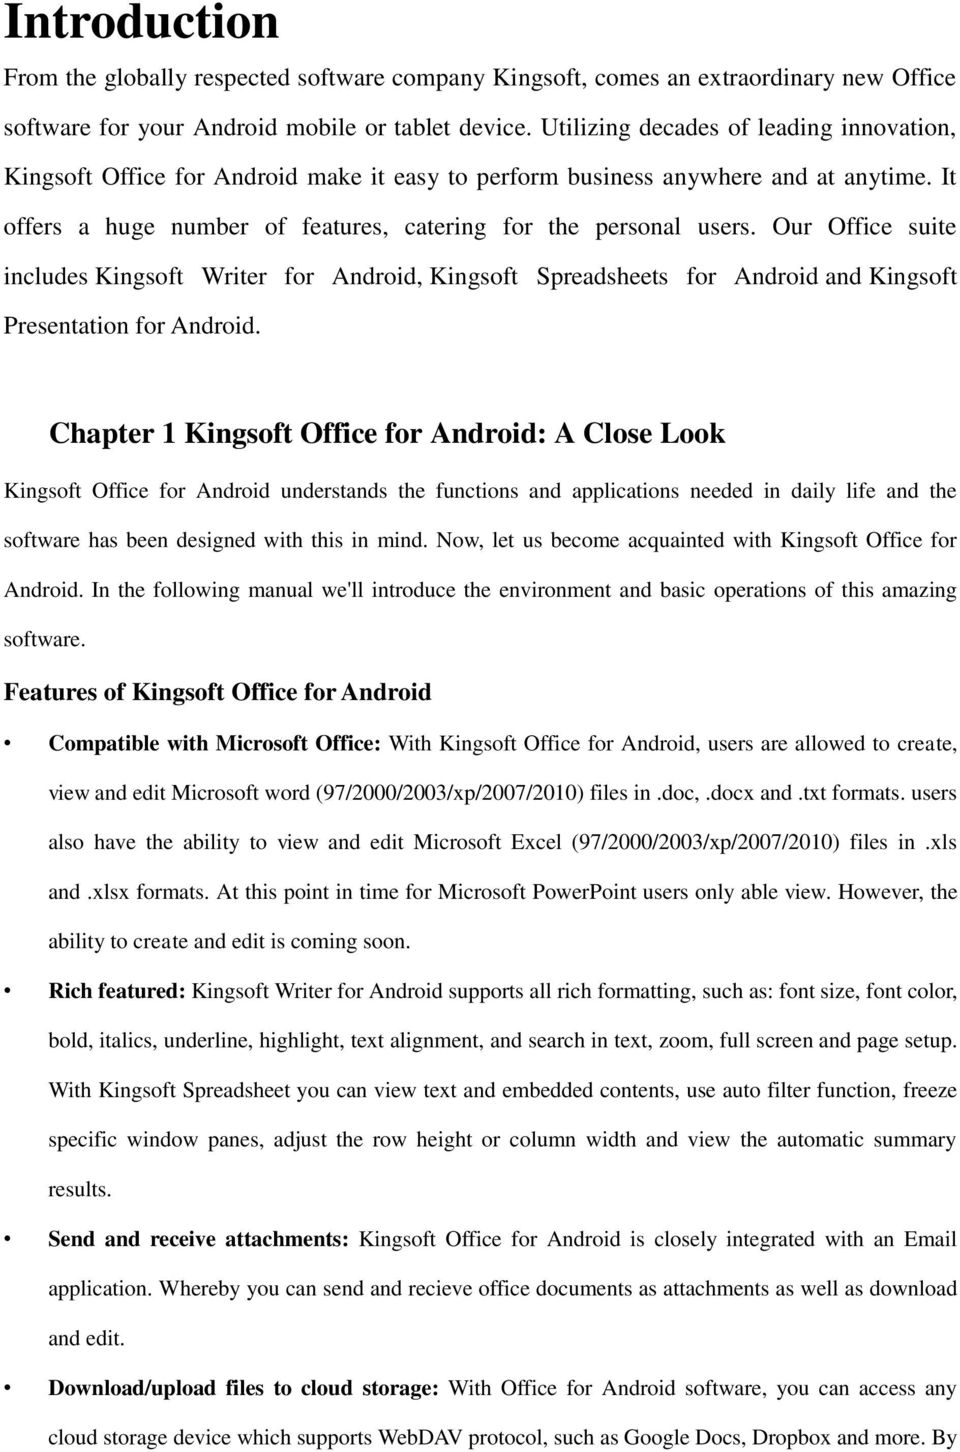 Chapter 1 Kingsoft Office for Android: A Close Look